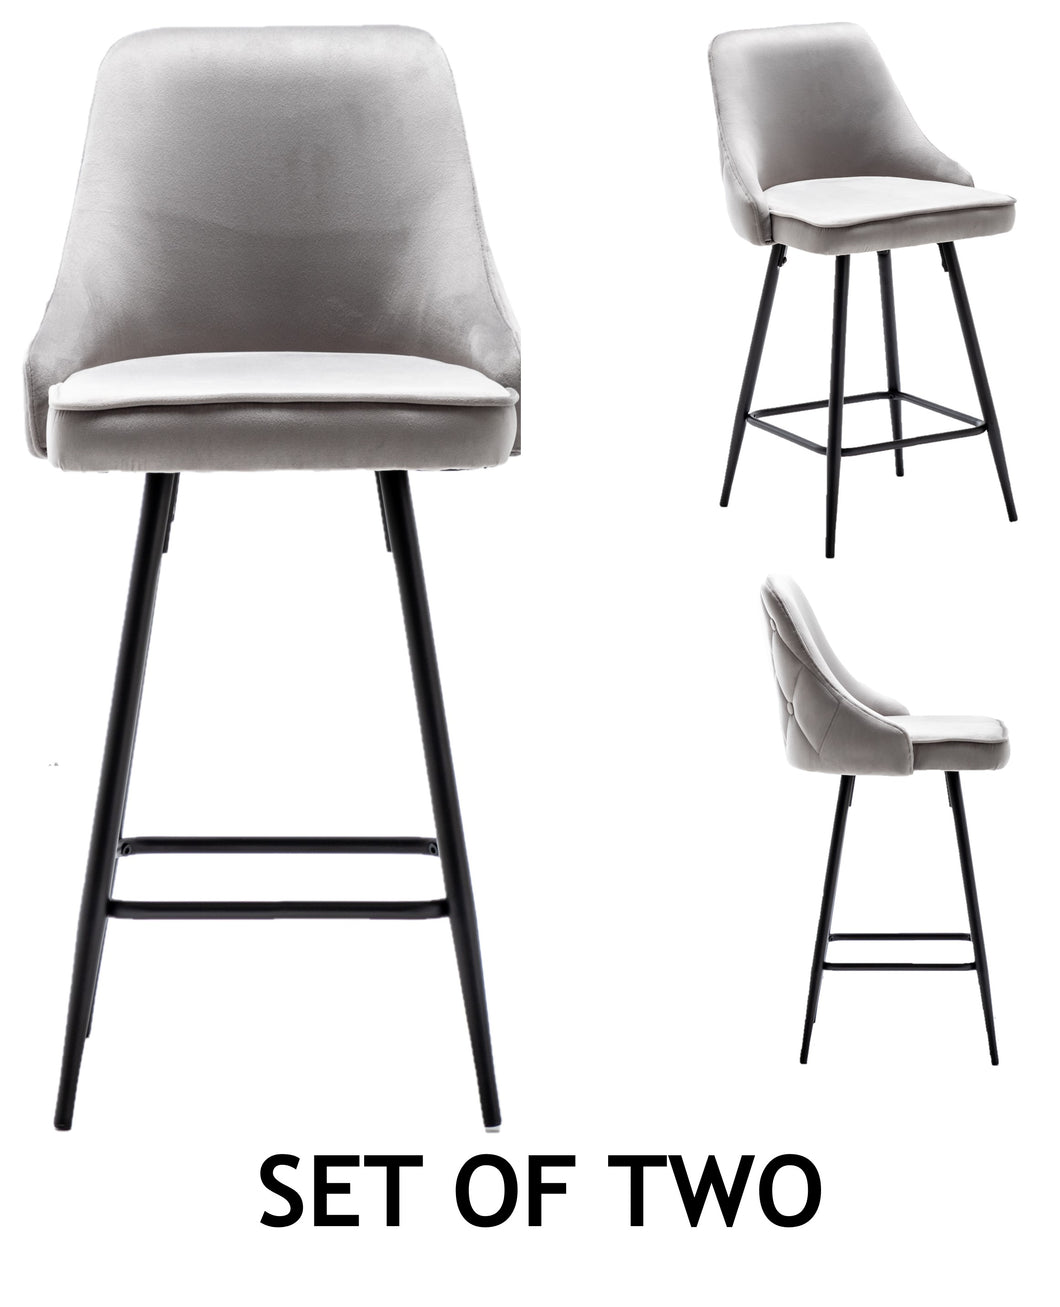 Tasleem Velvet Gray Tufted Upholstered Modern Premium Stool Bar Chairs Set of 2